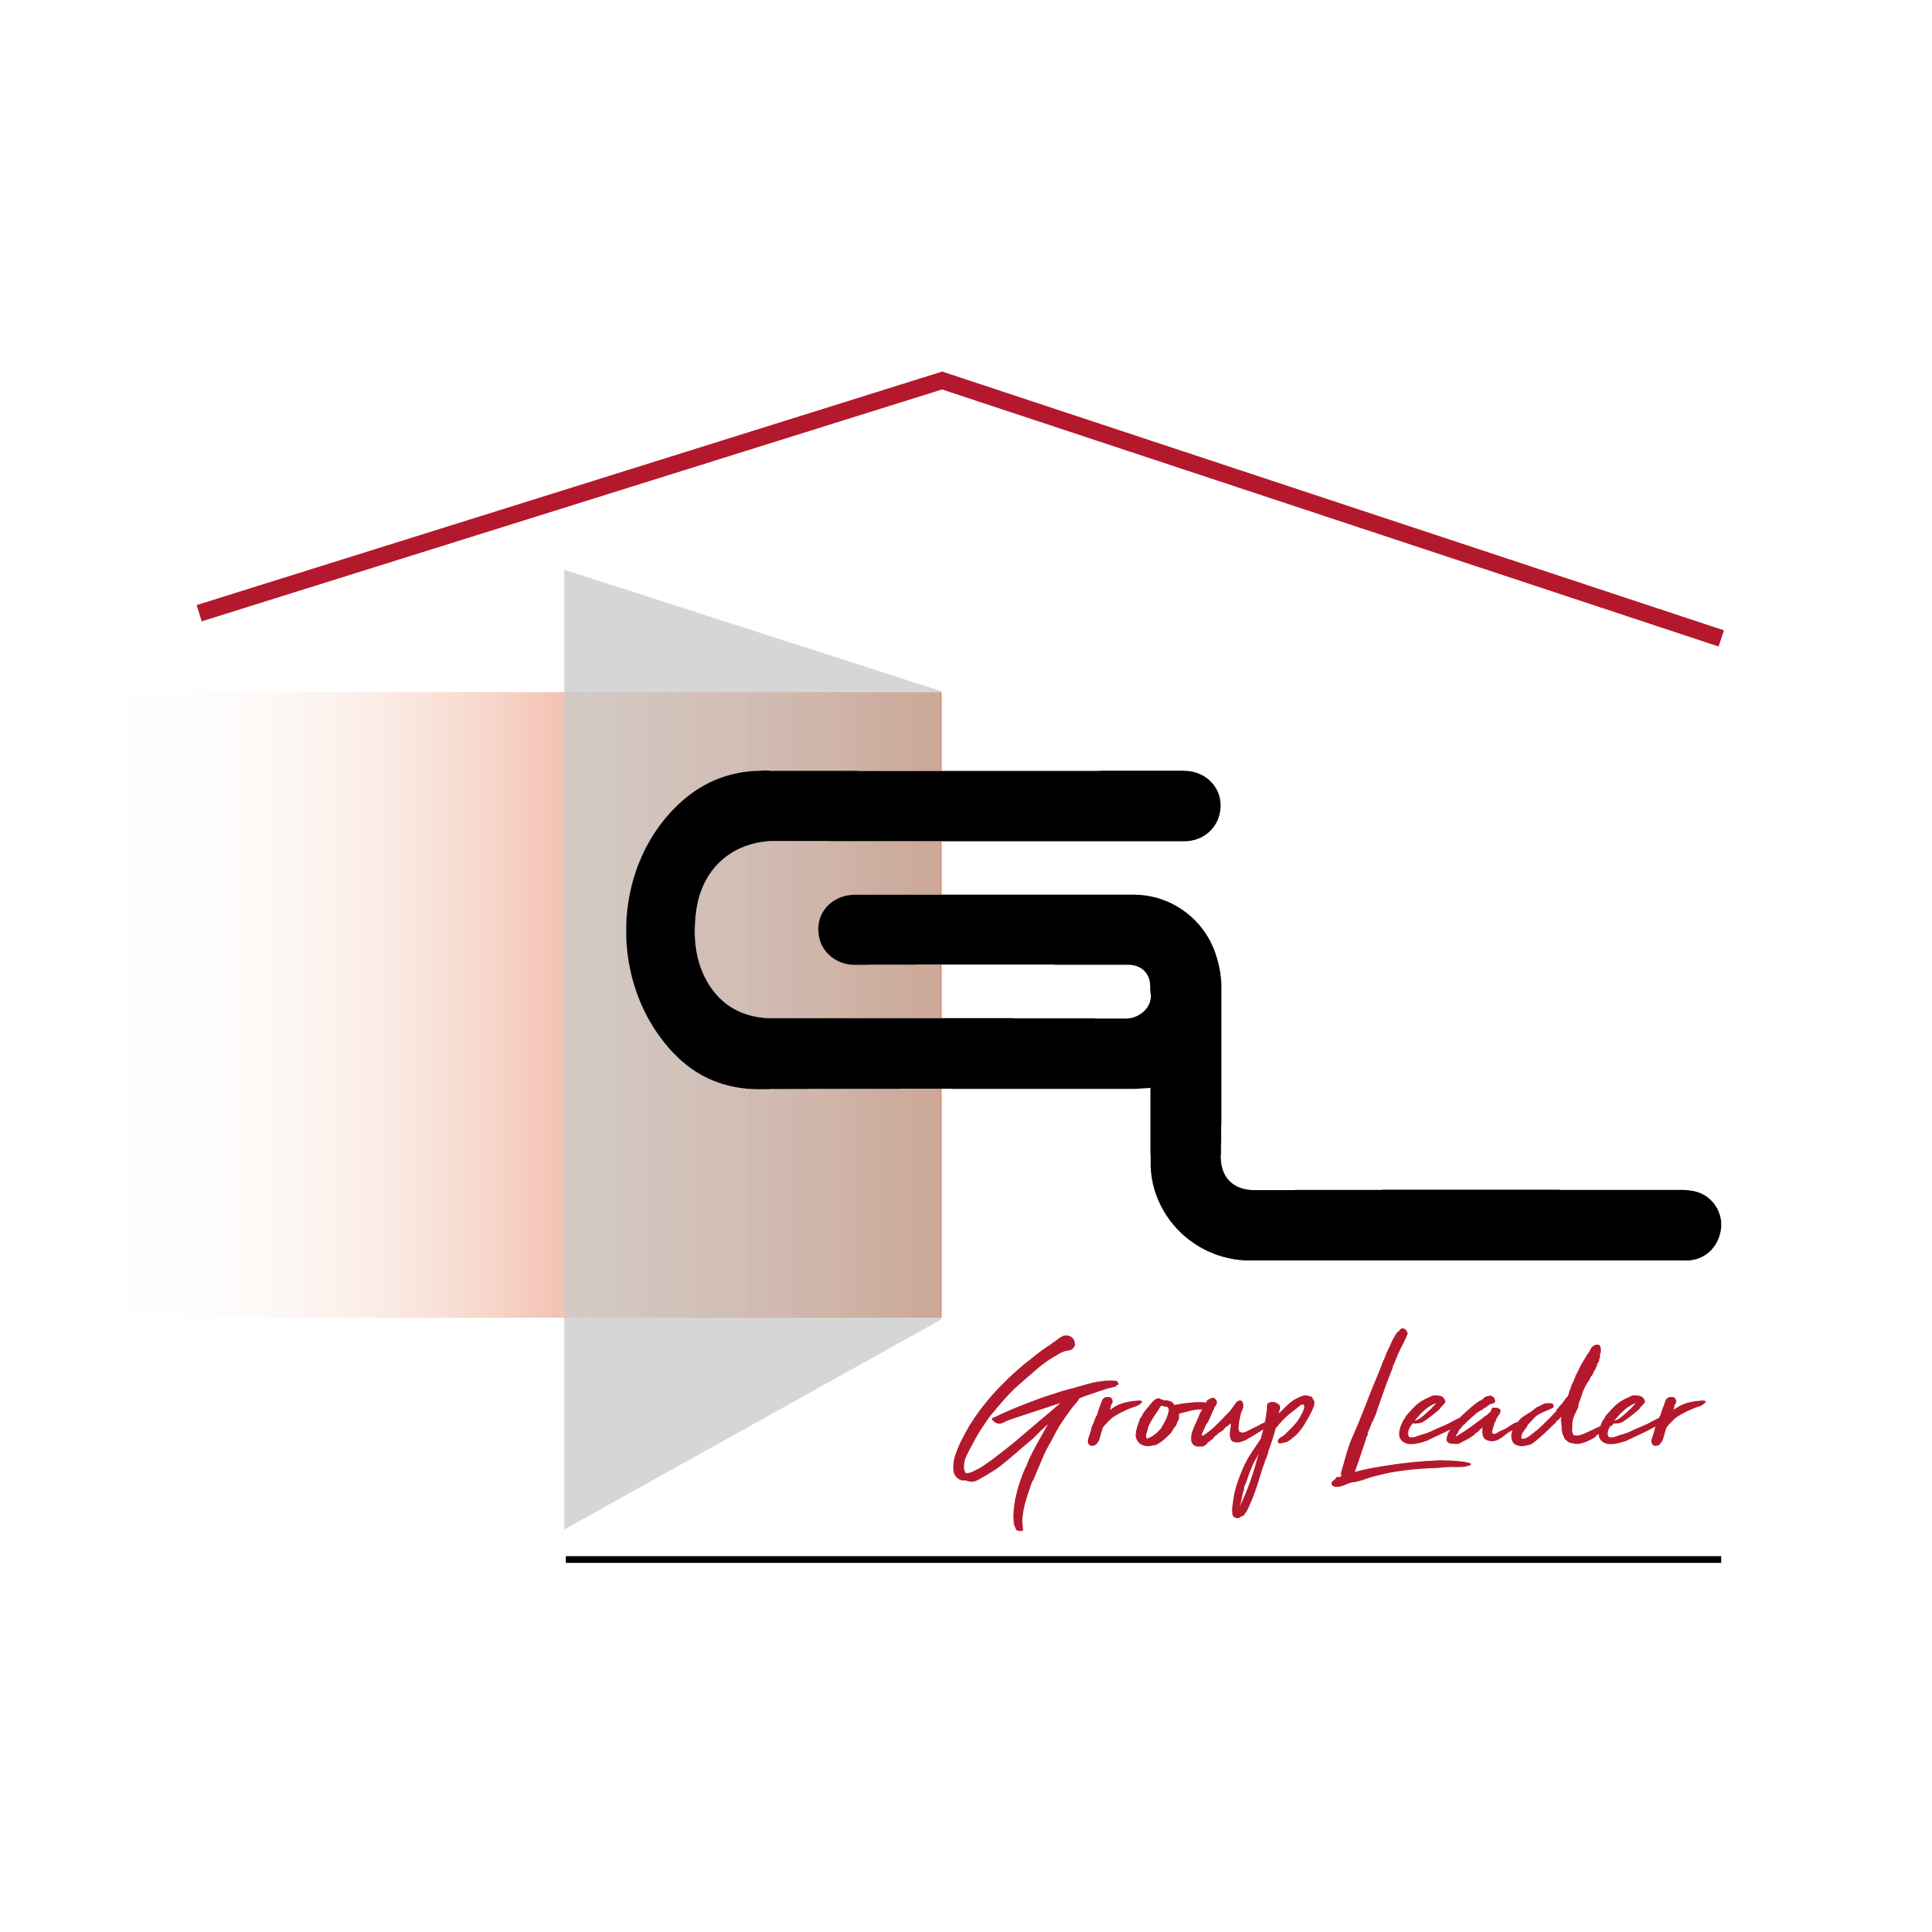 Group Leader